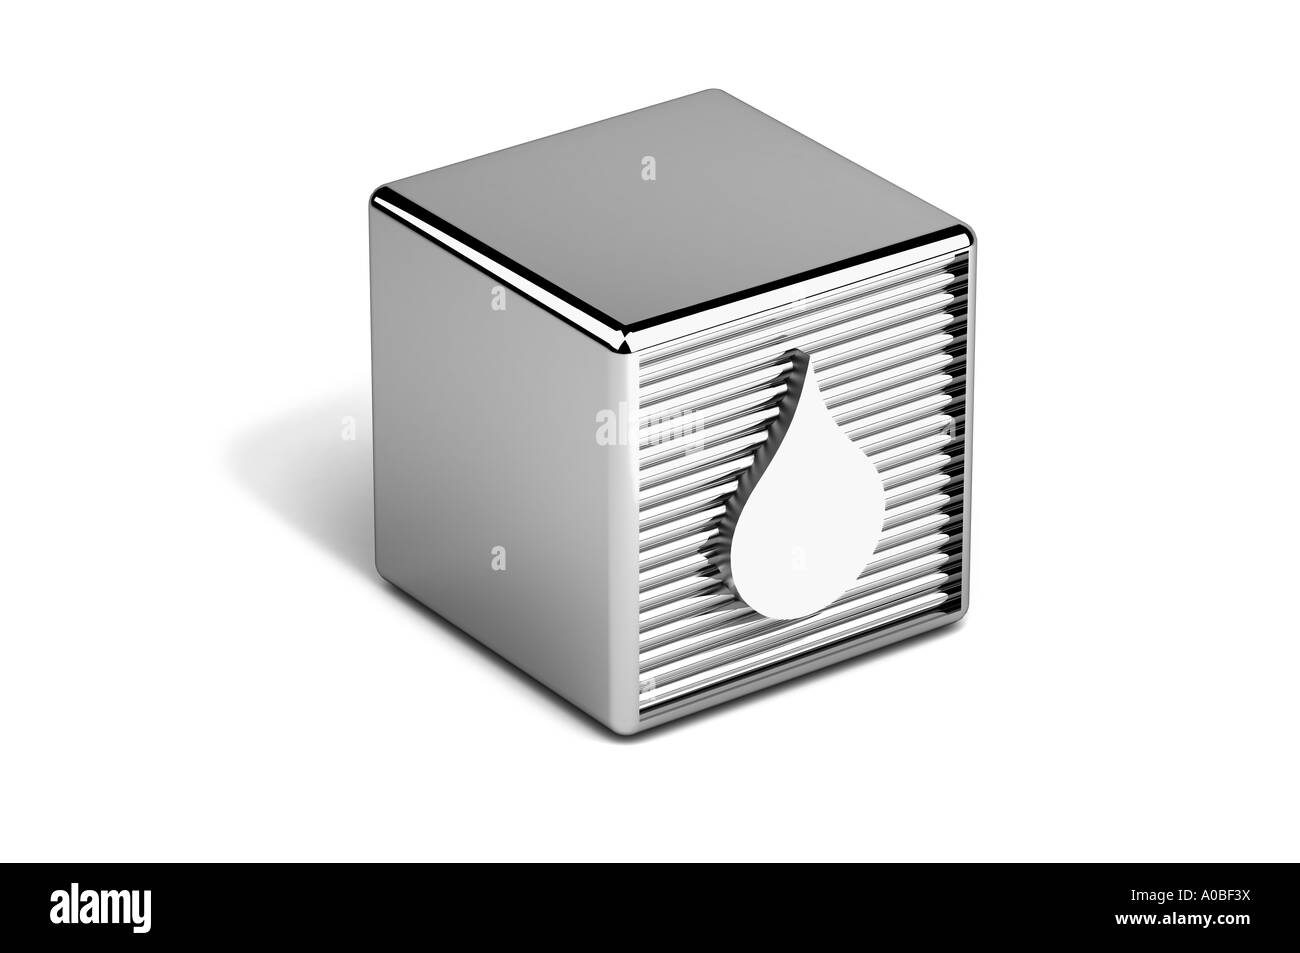 Water droplet icon on toy block - Stock Image